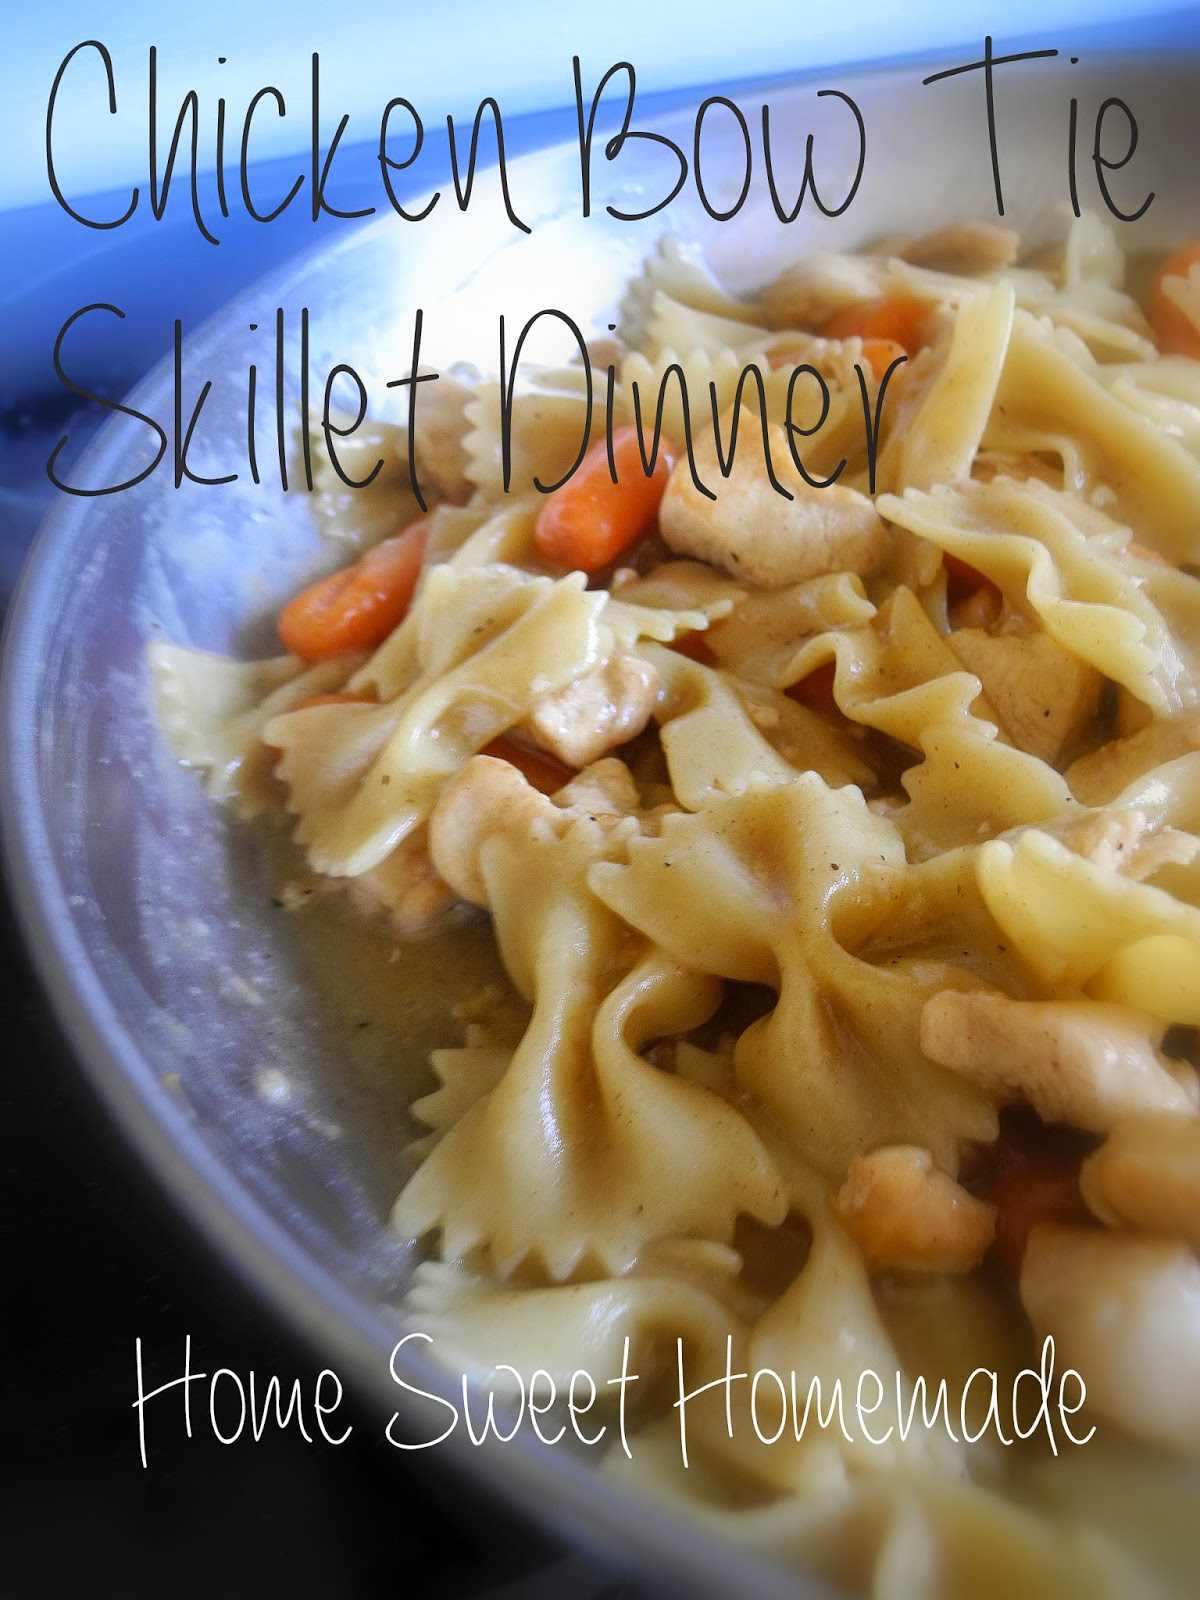 Chicken Bow Tie Skillet Dinner